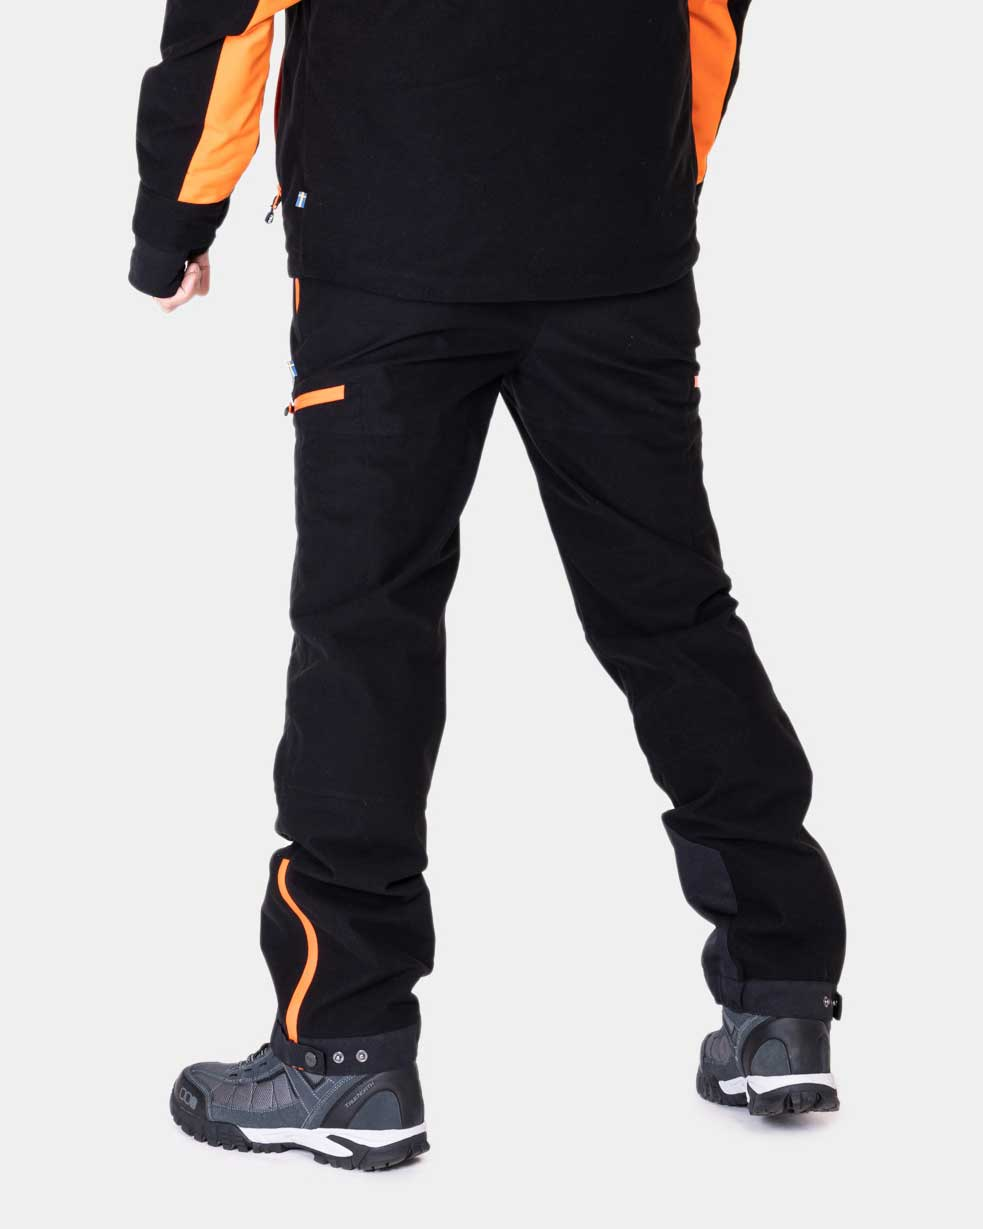 P4h Hunters Elite Pant Black, Herr